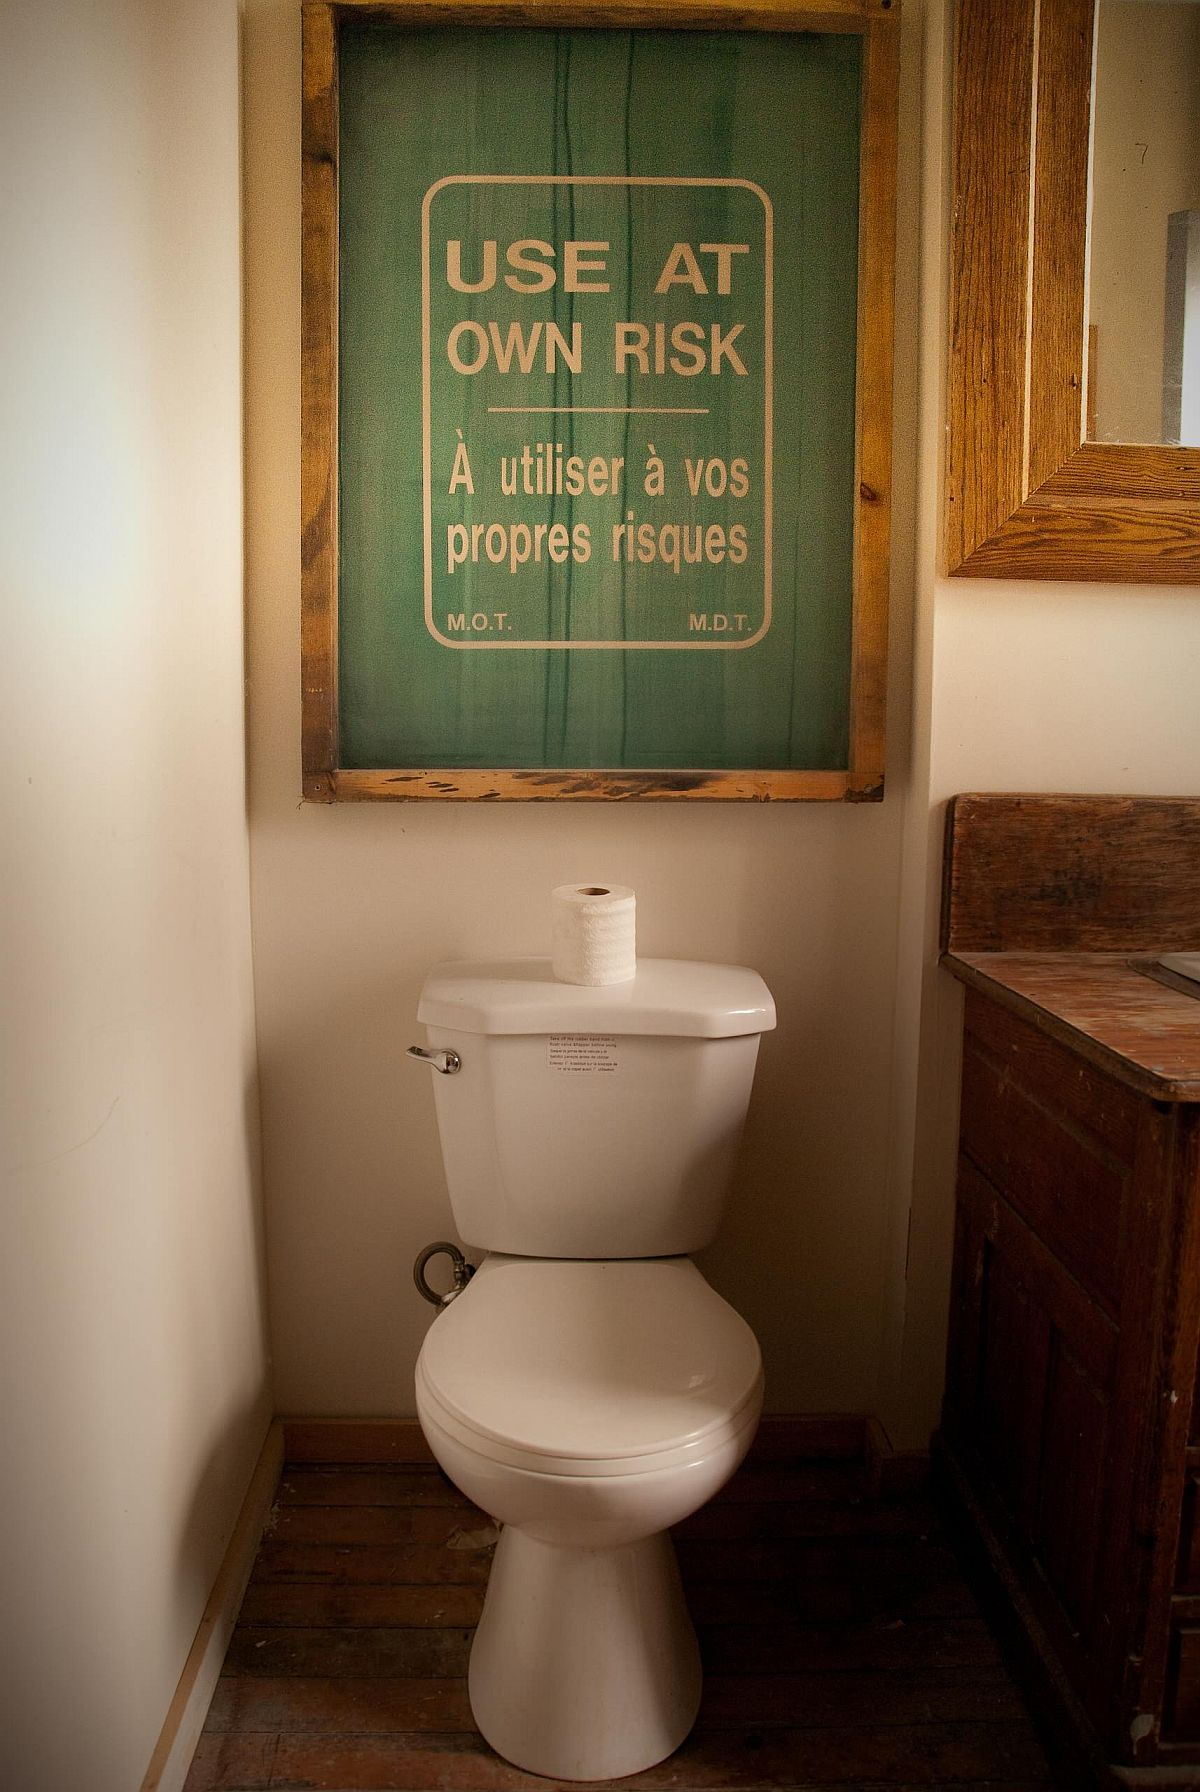 Small rustic bathroom in Toronto with a fun sign above the toilet